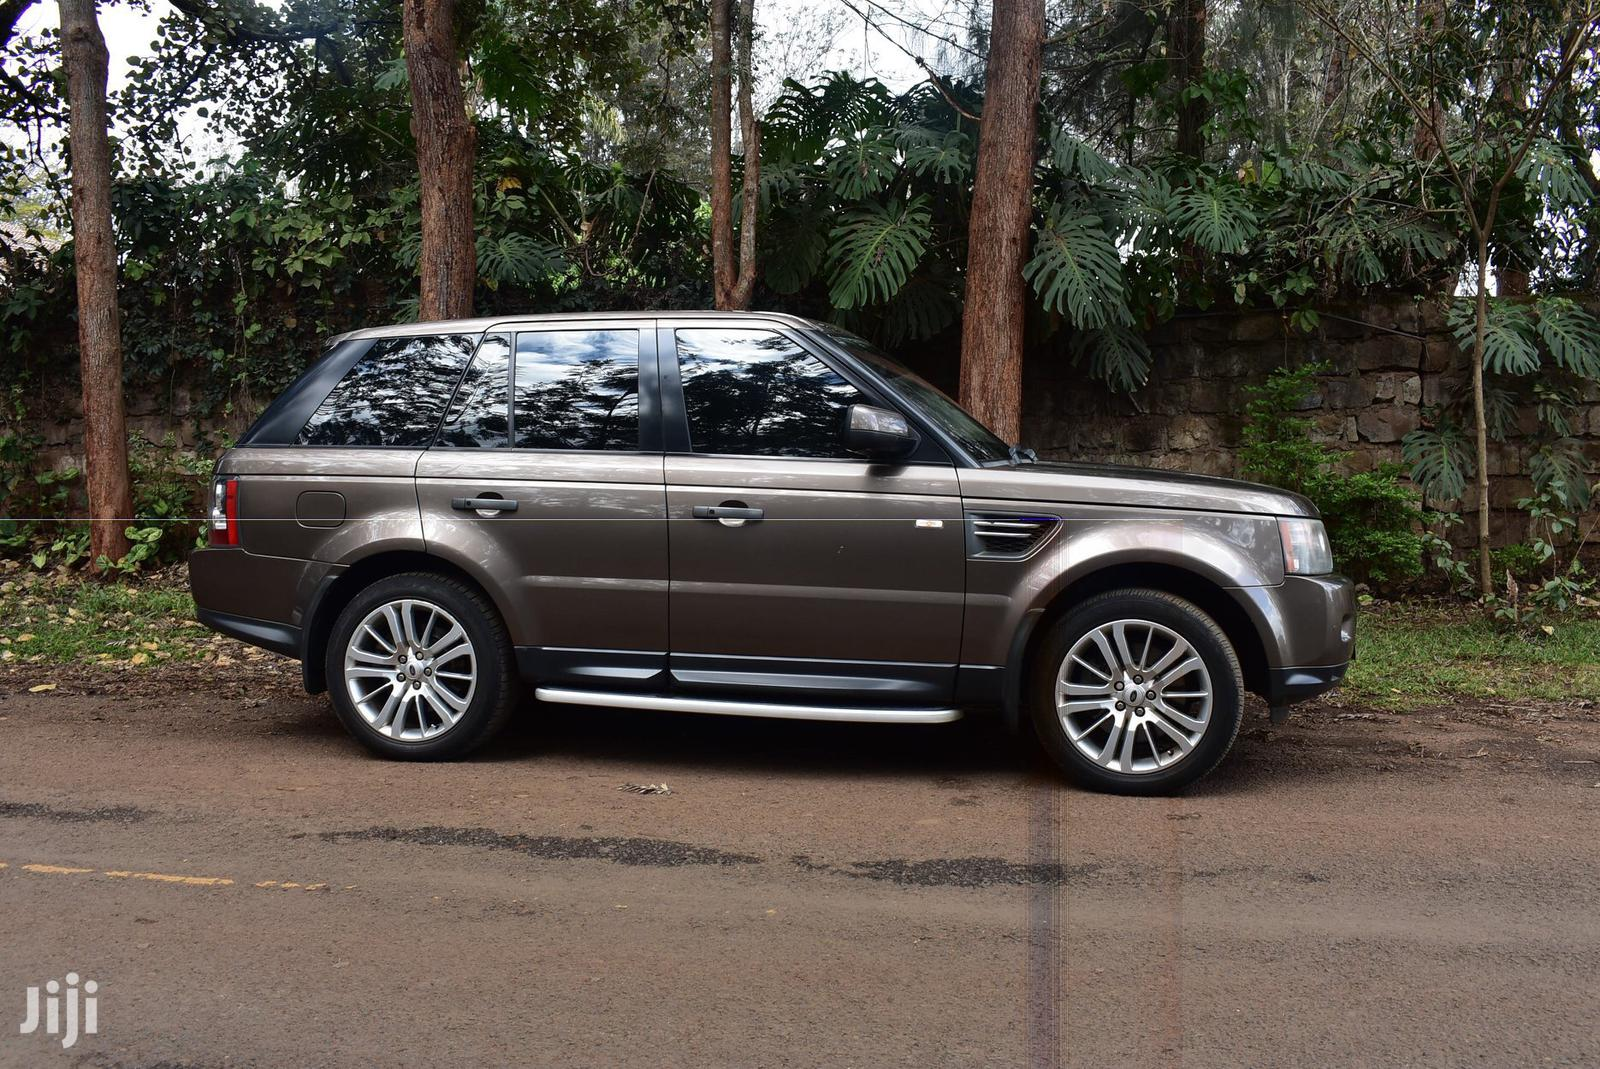 Archive: Land Rover Range Rover Sport 2008